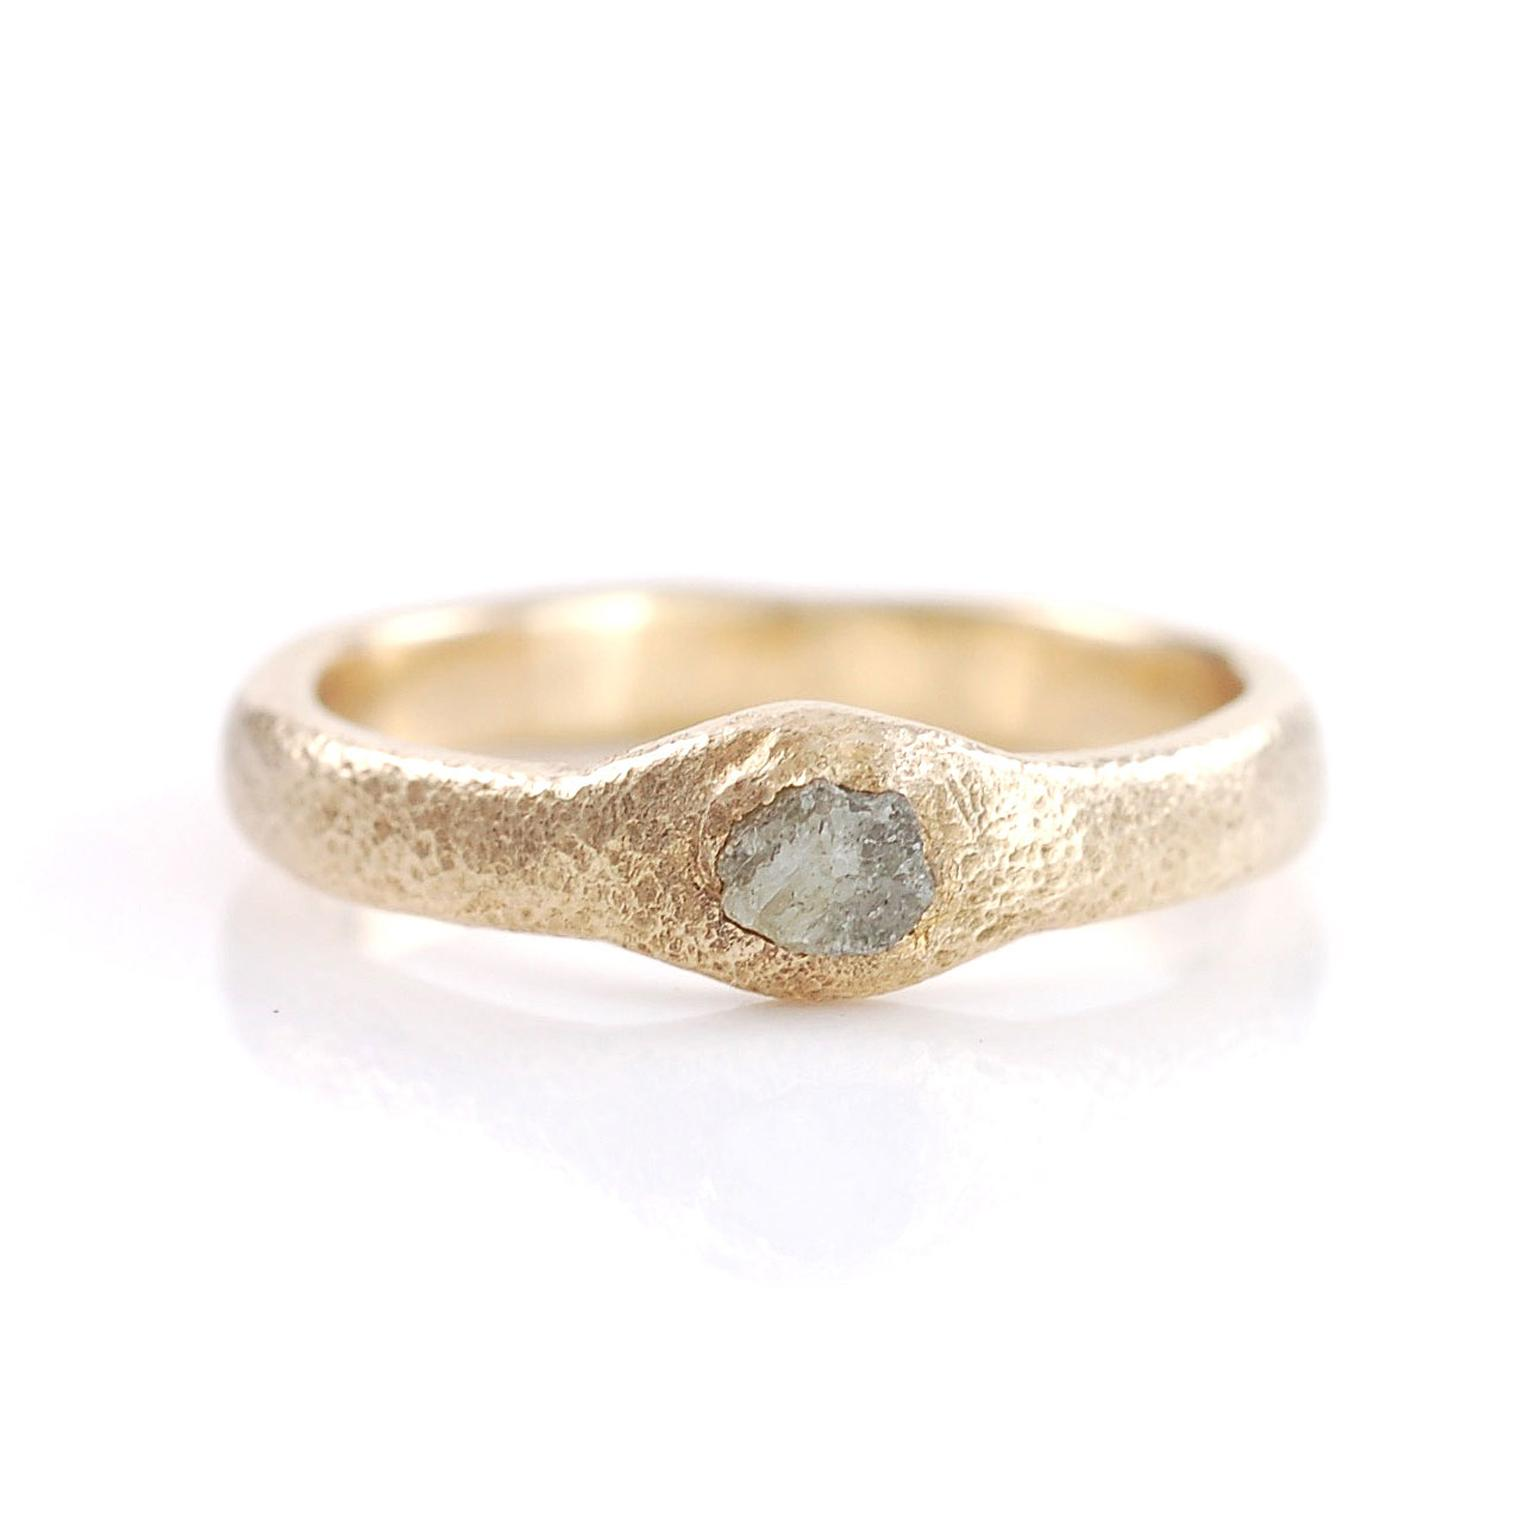 Sands of Time ring by Beth Cyr with a rough grey diamond